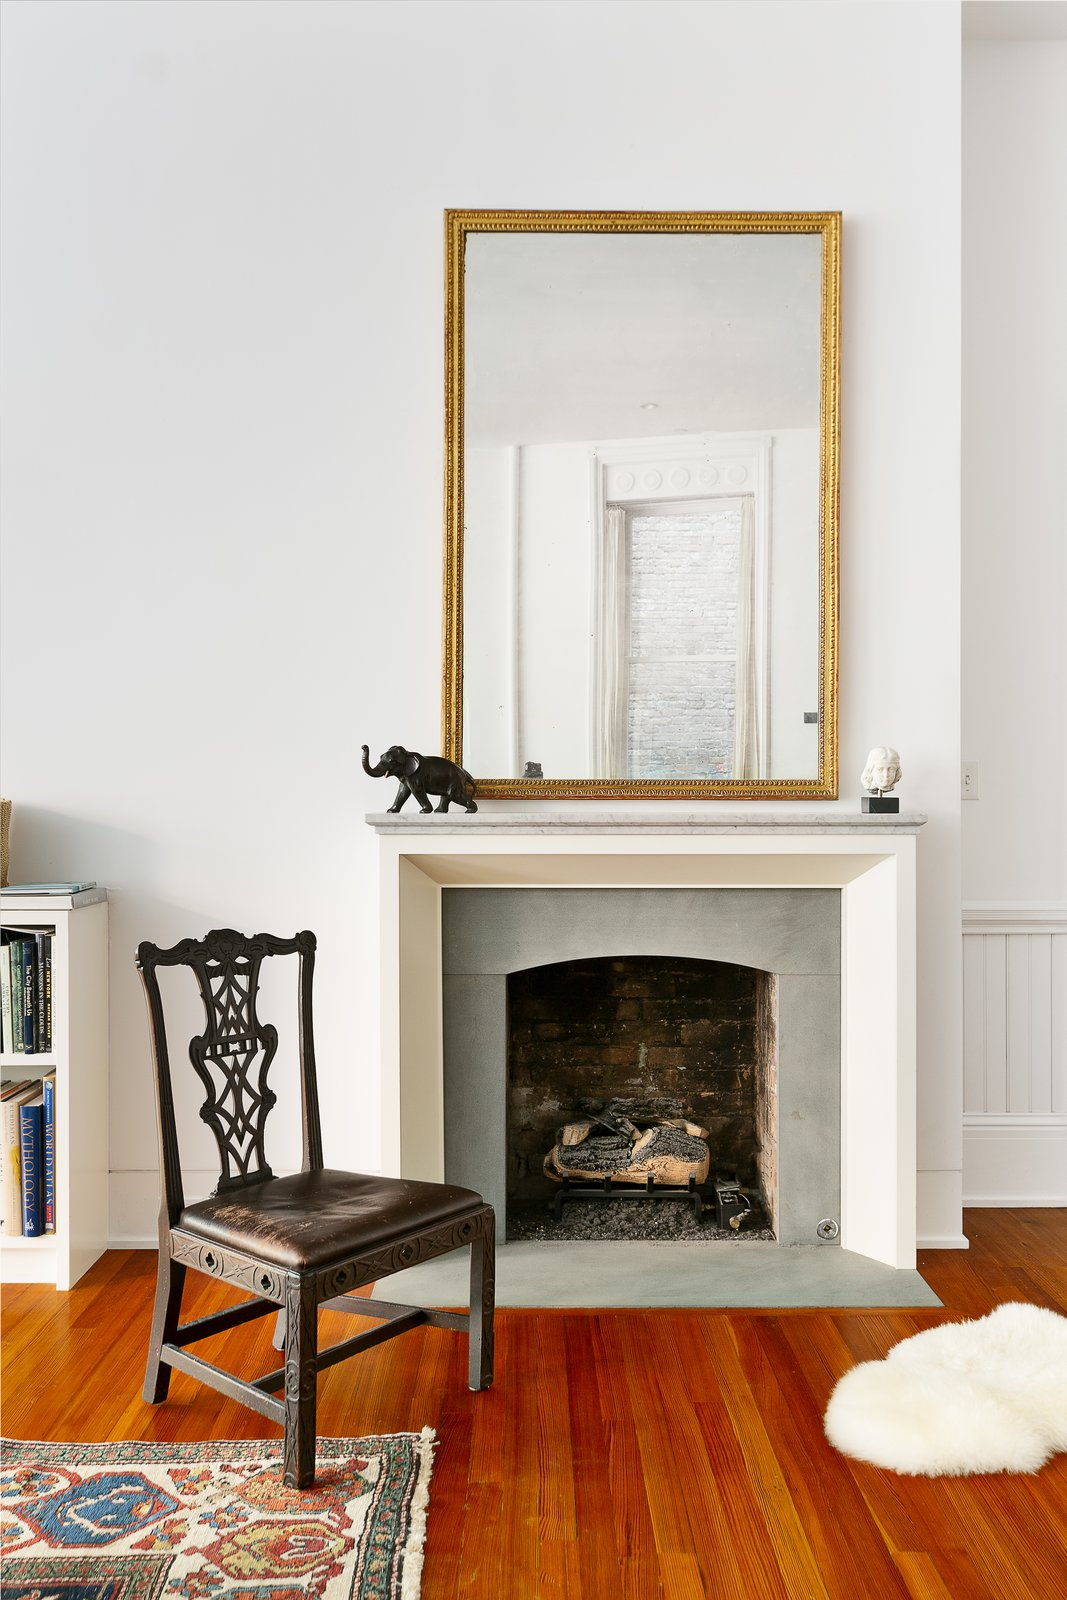 Living Room Stunning decorative fireplace brings warmth to the parlor floor space.  Renovated Co-op in Historic Astor Memorial School